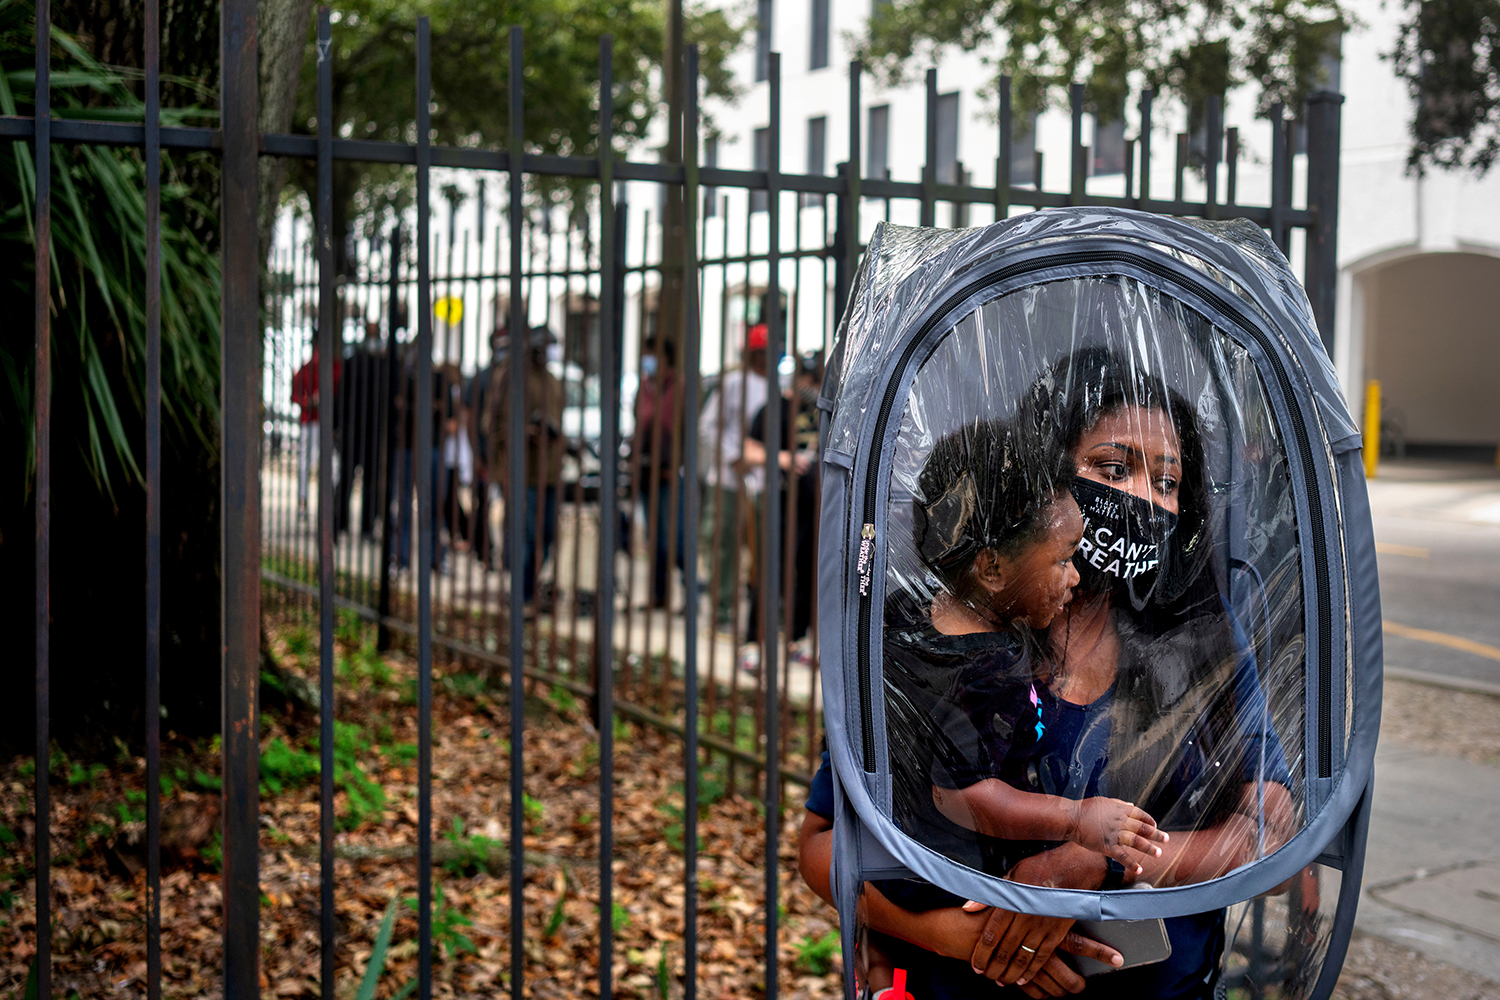 Dana Clark and her 18-month-old son, Mason, wait in line at City Hall in New Orleans on Oct. 16 as early voting begins for the upcoming presidential election. Clark said she donned the protective plastic cover because didn't know how many people would be wearing masks in line, and her child doesn't have one. She also works as a teacher and wanted to take precautions for her students' sakes. Kathleen Flynn/REUTERS